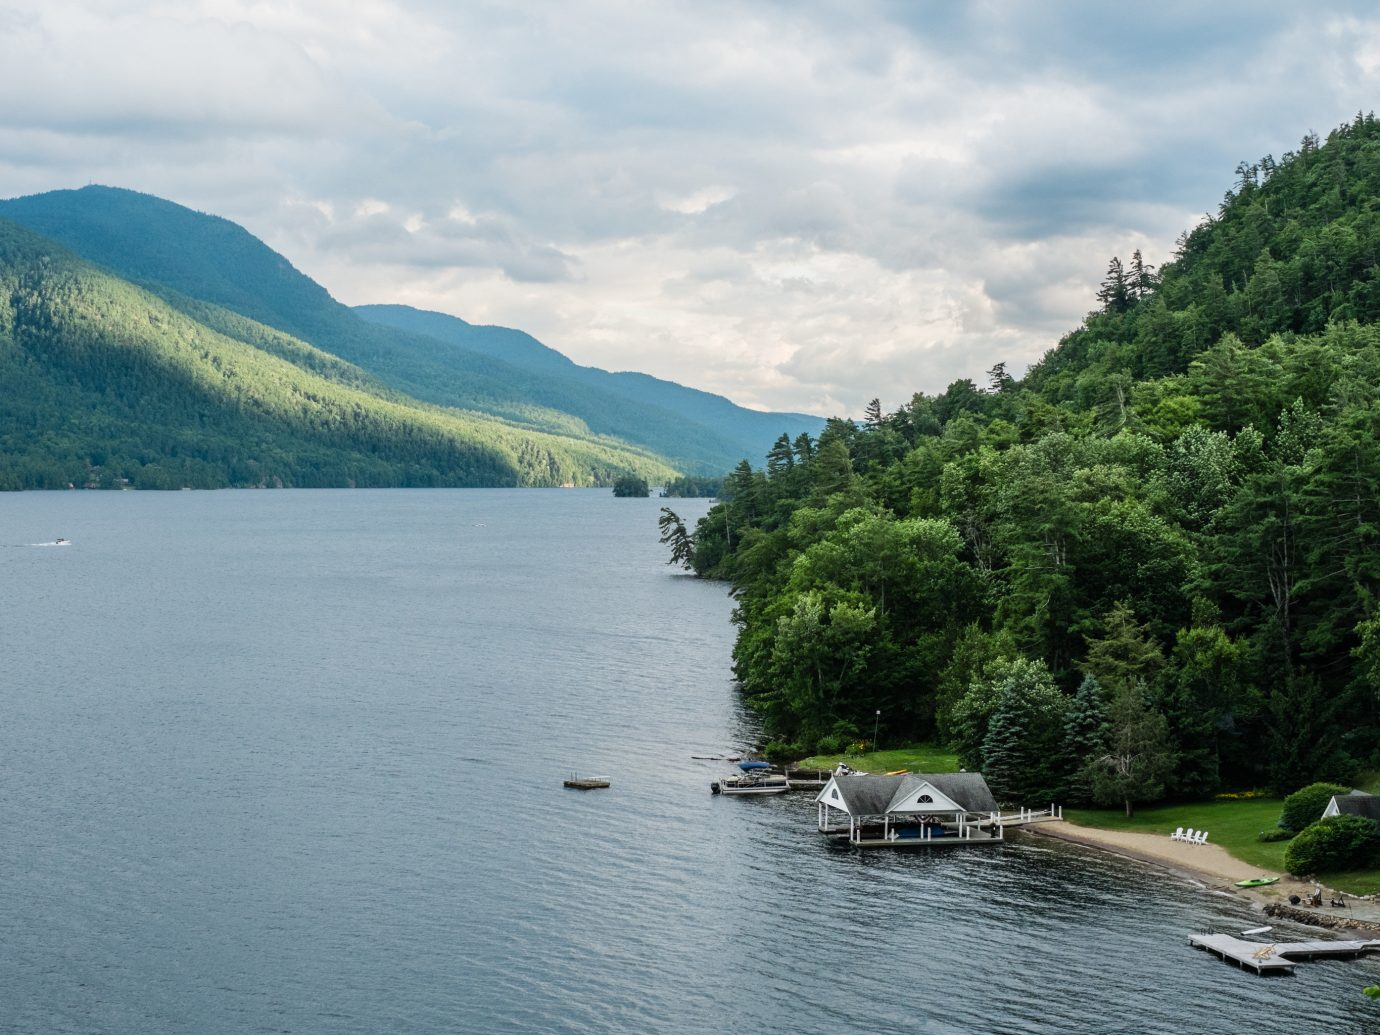 Lakes + Rivers Outdoors + Adventure Trip Ideas water outdoor sky mountain Lake Nature Boat mountainous landforms landform geographical feature body of water River loch reservoir fjord floating surrounded vehicle landscape mountain range boating traveling distance Island shore hillside